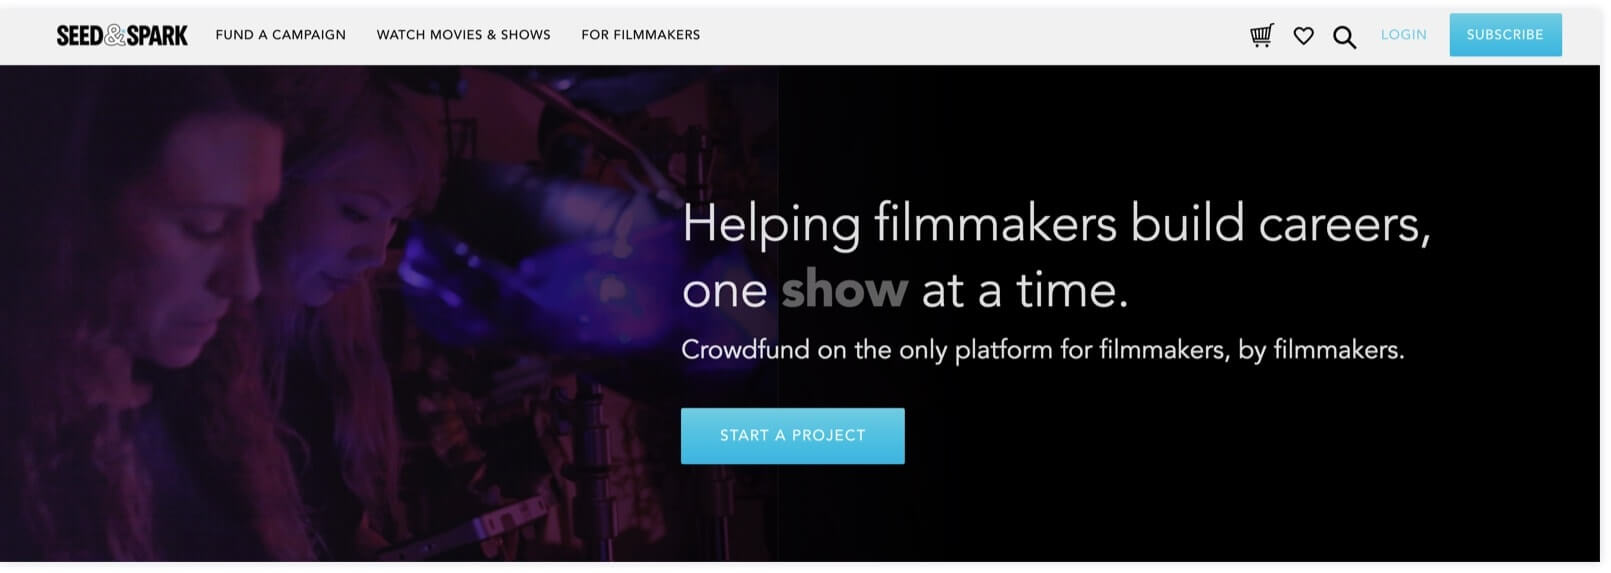 Best Filmmaking Software and Tools - Seed&Spark - StudioBinder